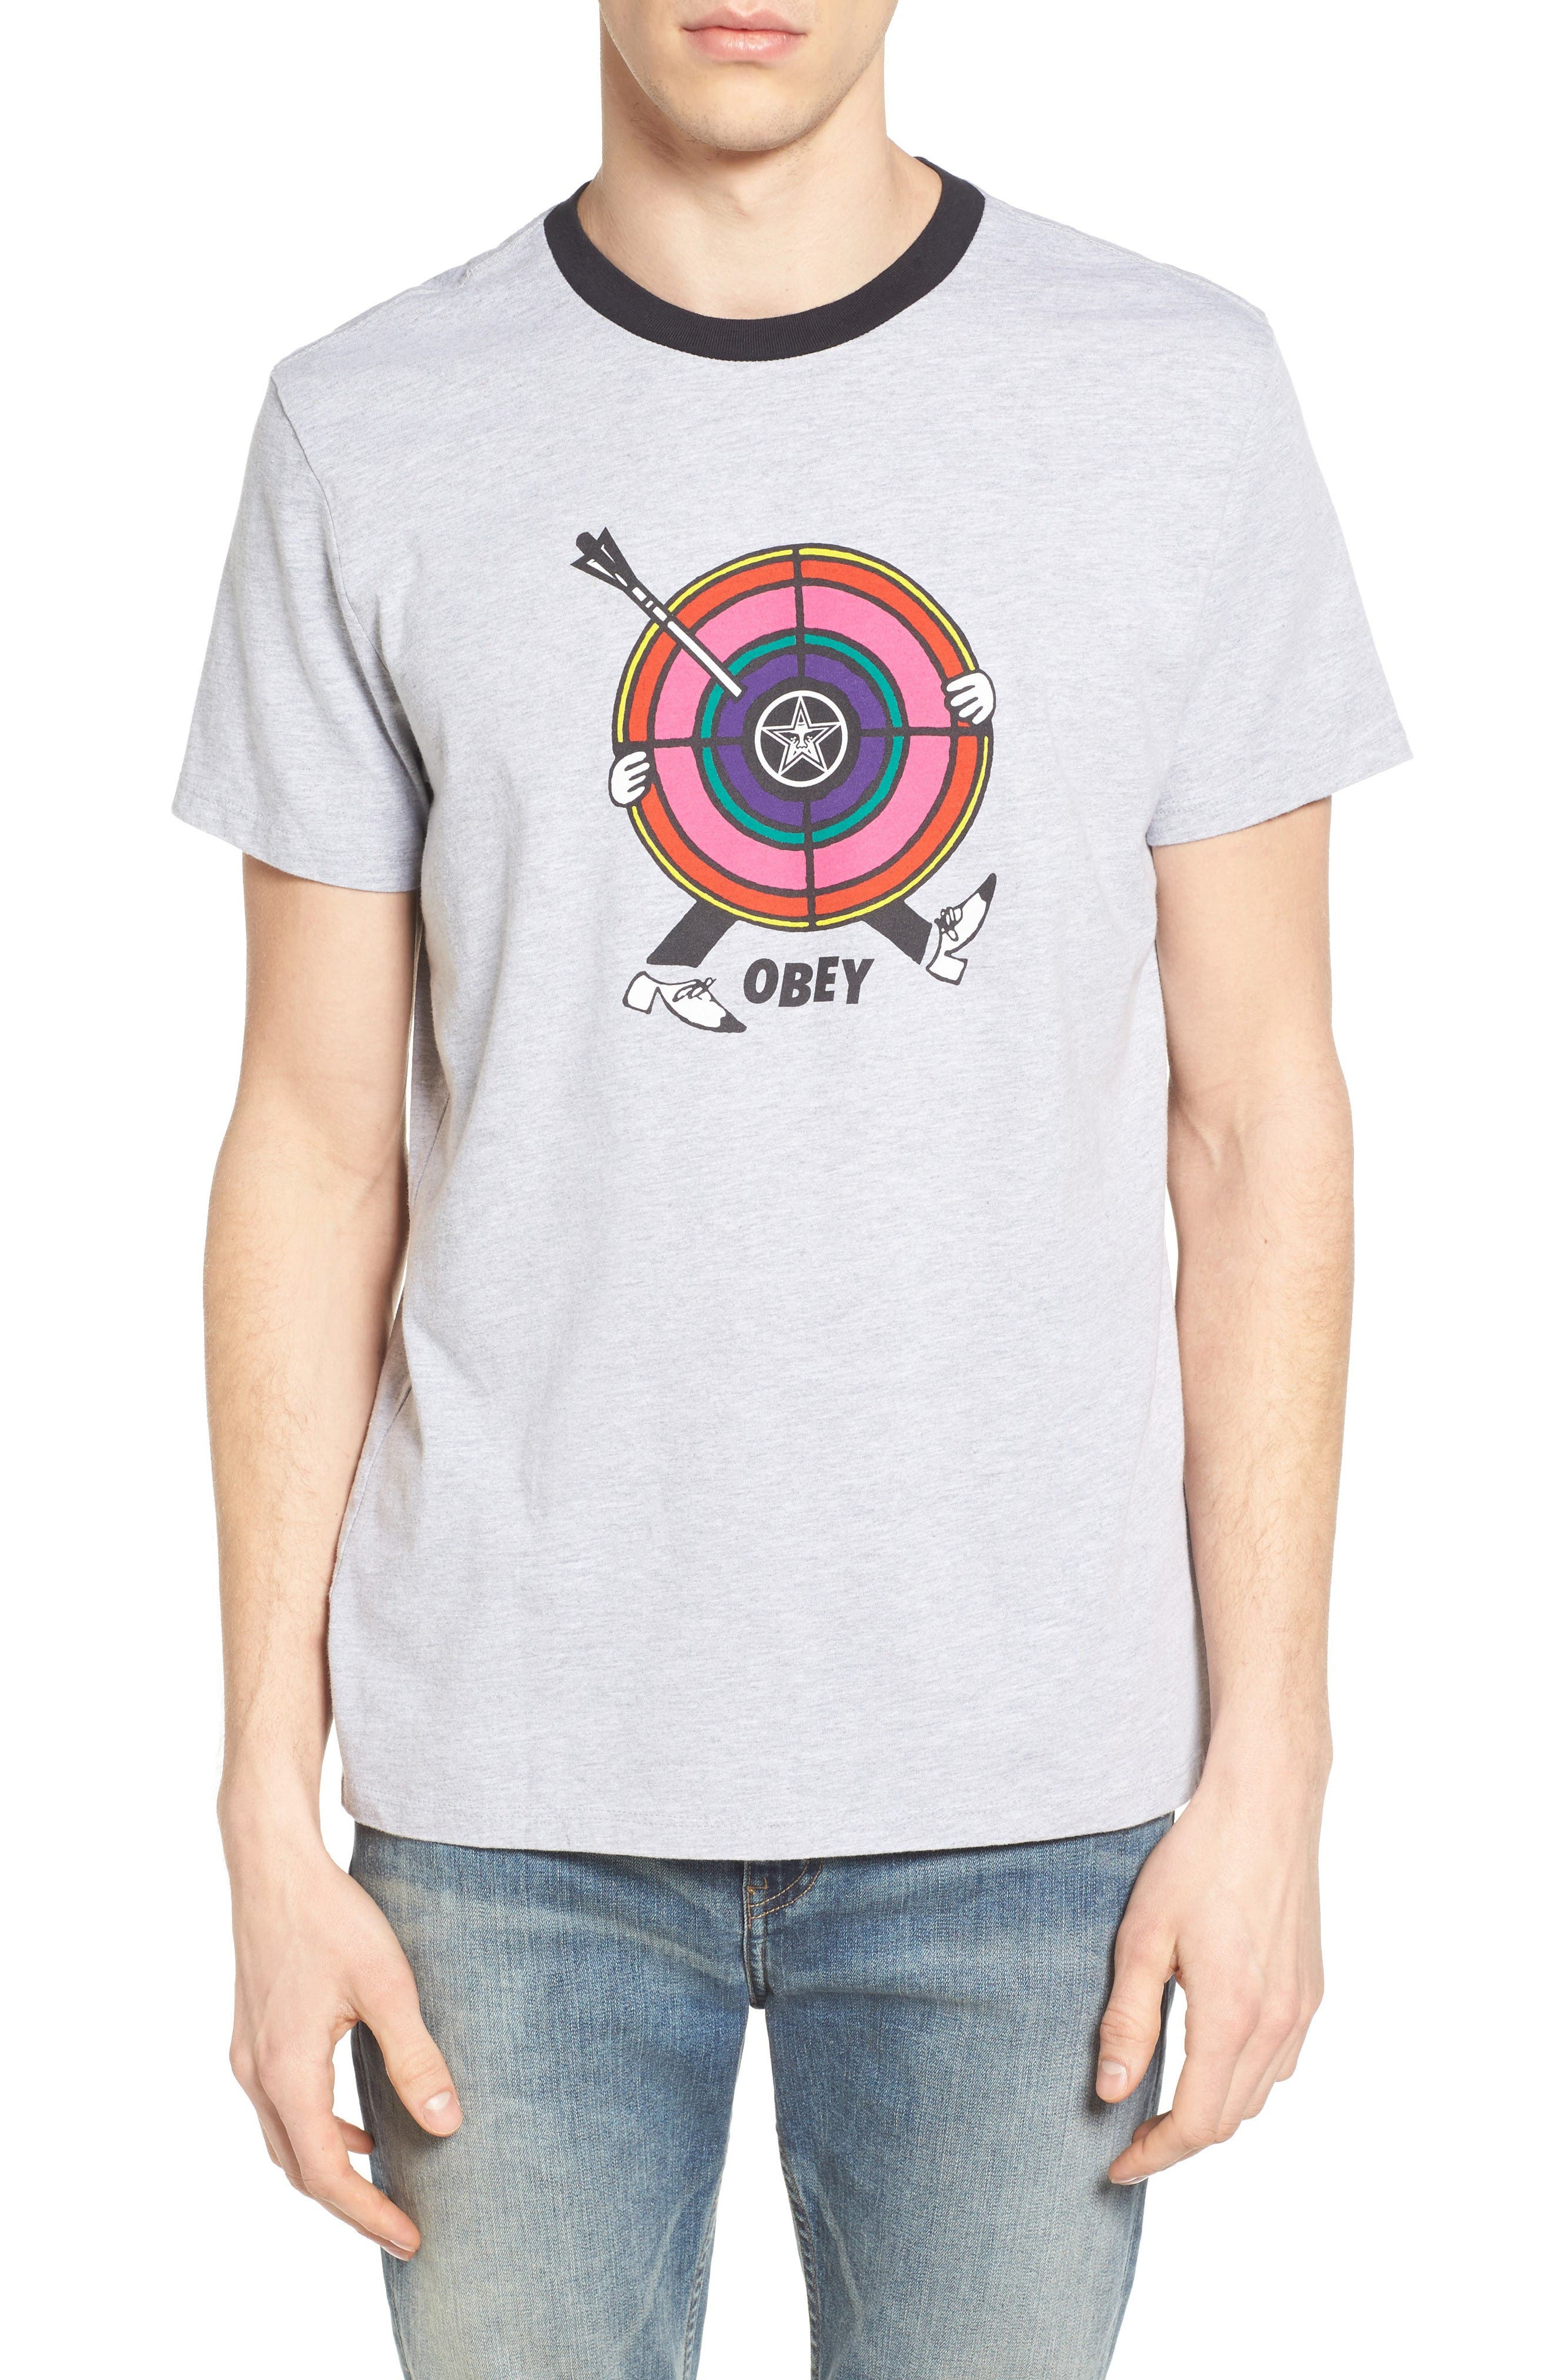 Obey Target Practice Graphic T-Shirt